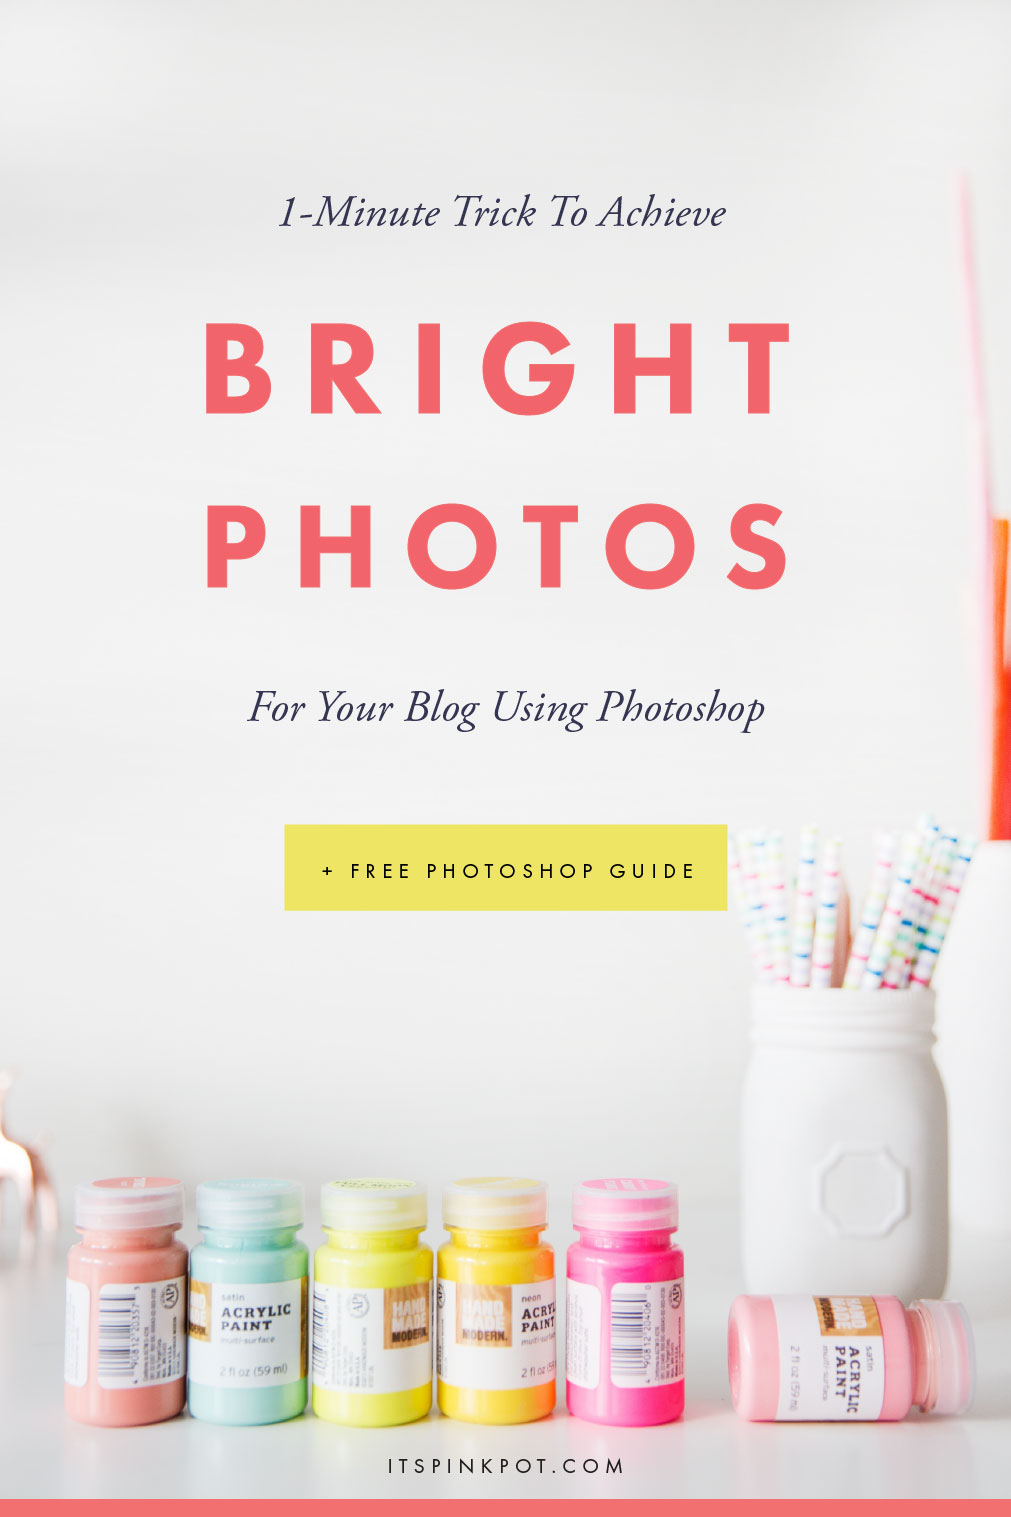 Brighten your photos using photoshop in under 1 minute with this super easy and quick tutorial + Download a FREE Photoshop Cheatsheet to speed up your workflow!